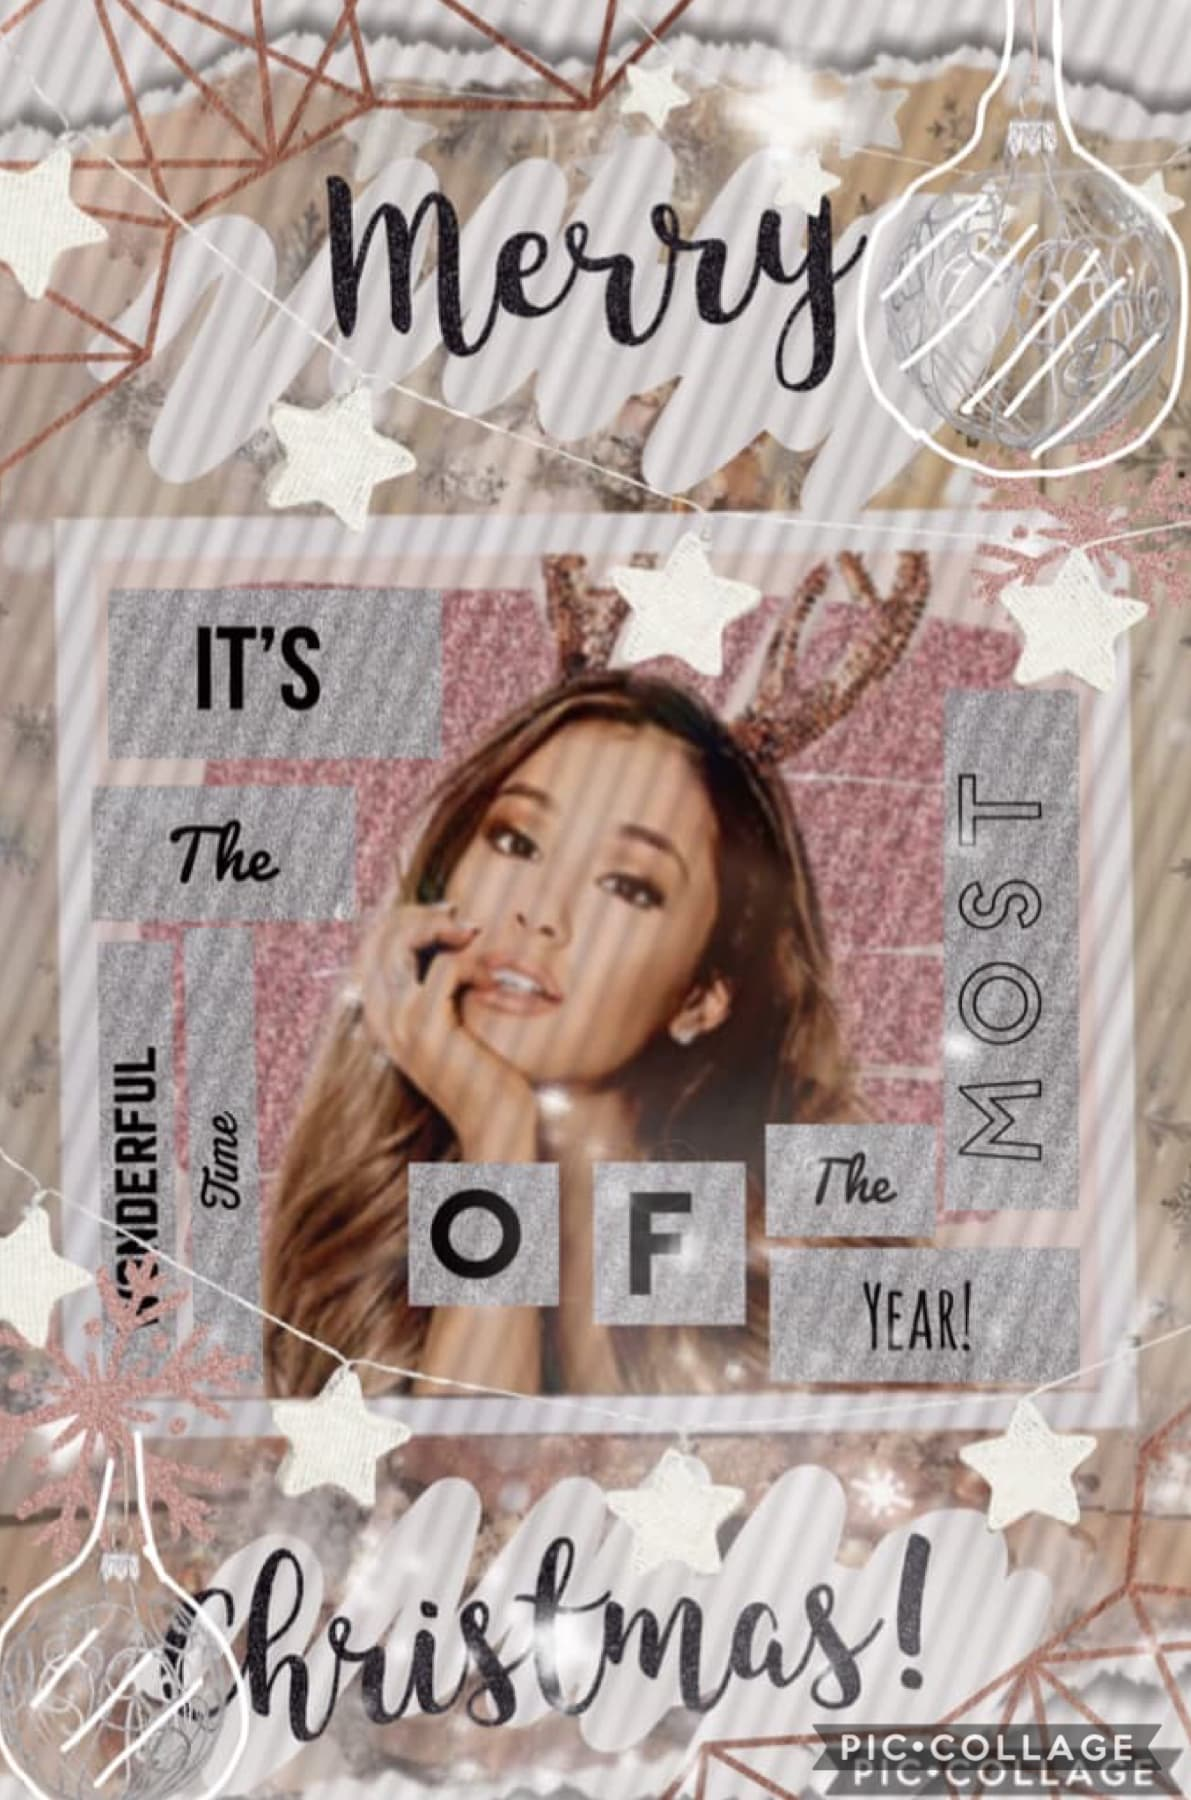 COLLAB WITH THE GORGEOUS SEACRITTER8! omg this girl deserves the whole world to follow her so make sure you do! Loved collabing with you 💕💕 Aotd: Favourite singer? Qotd: Ariana Grande or Billie Eilish!